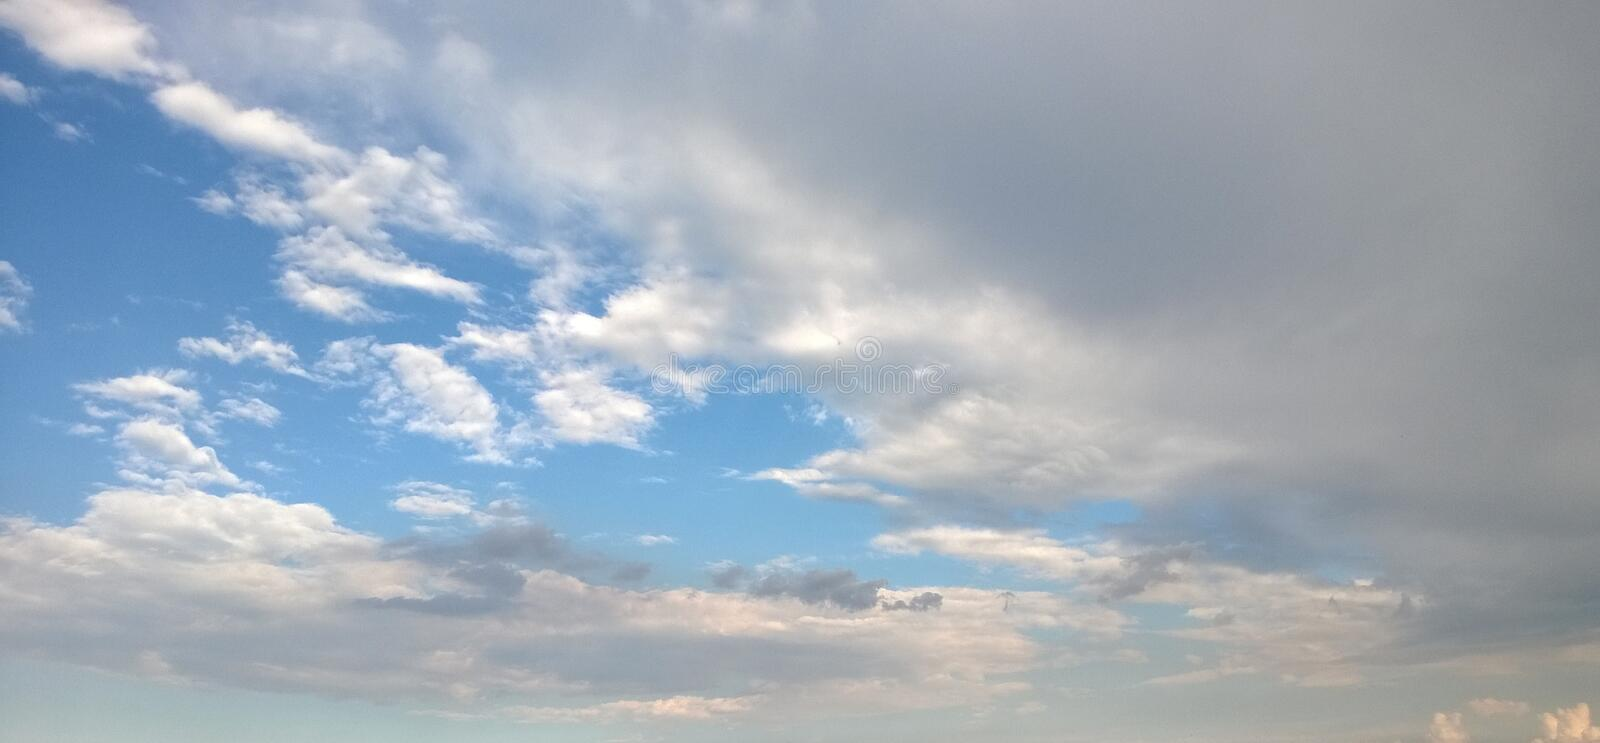 Splendid beauty of the sky minutes after the storm royalty free stock photography